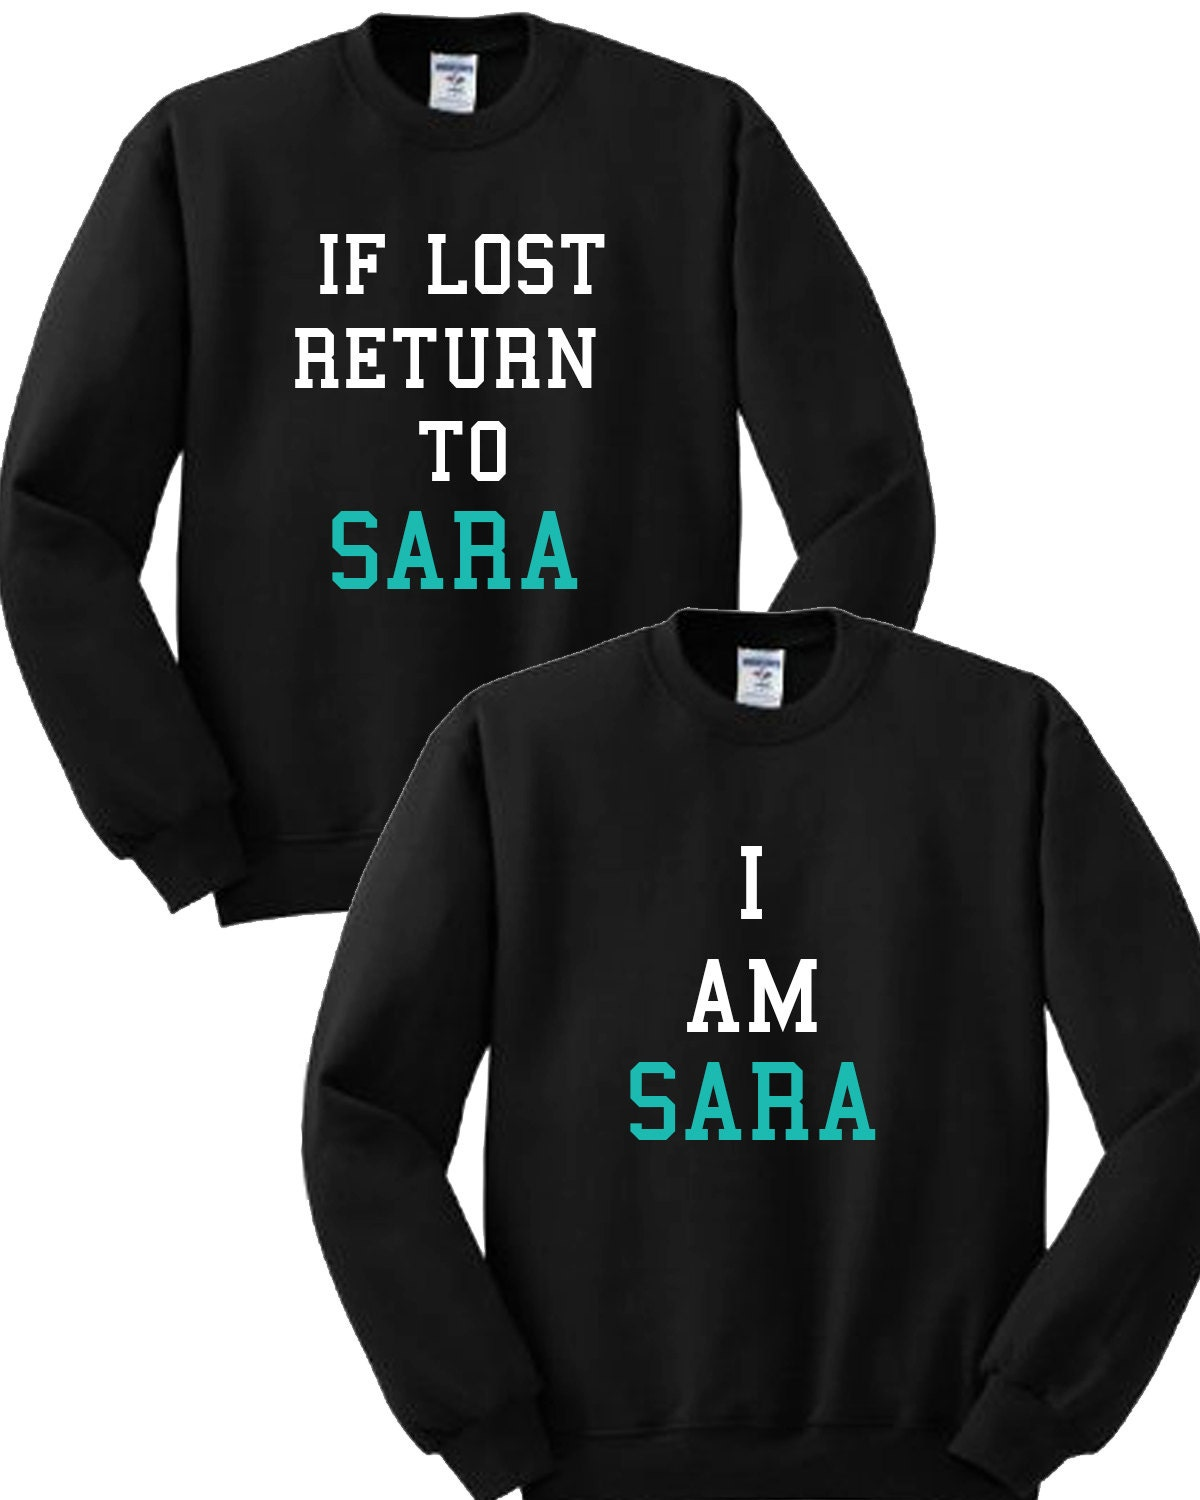 If Lost Return to Customize Couple Shirts Funny Couple Shirt